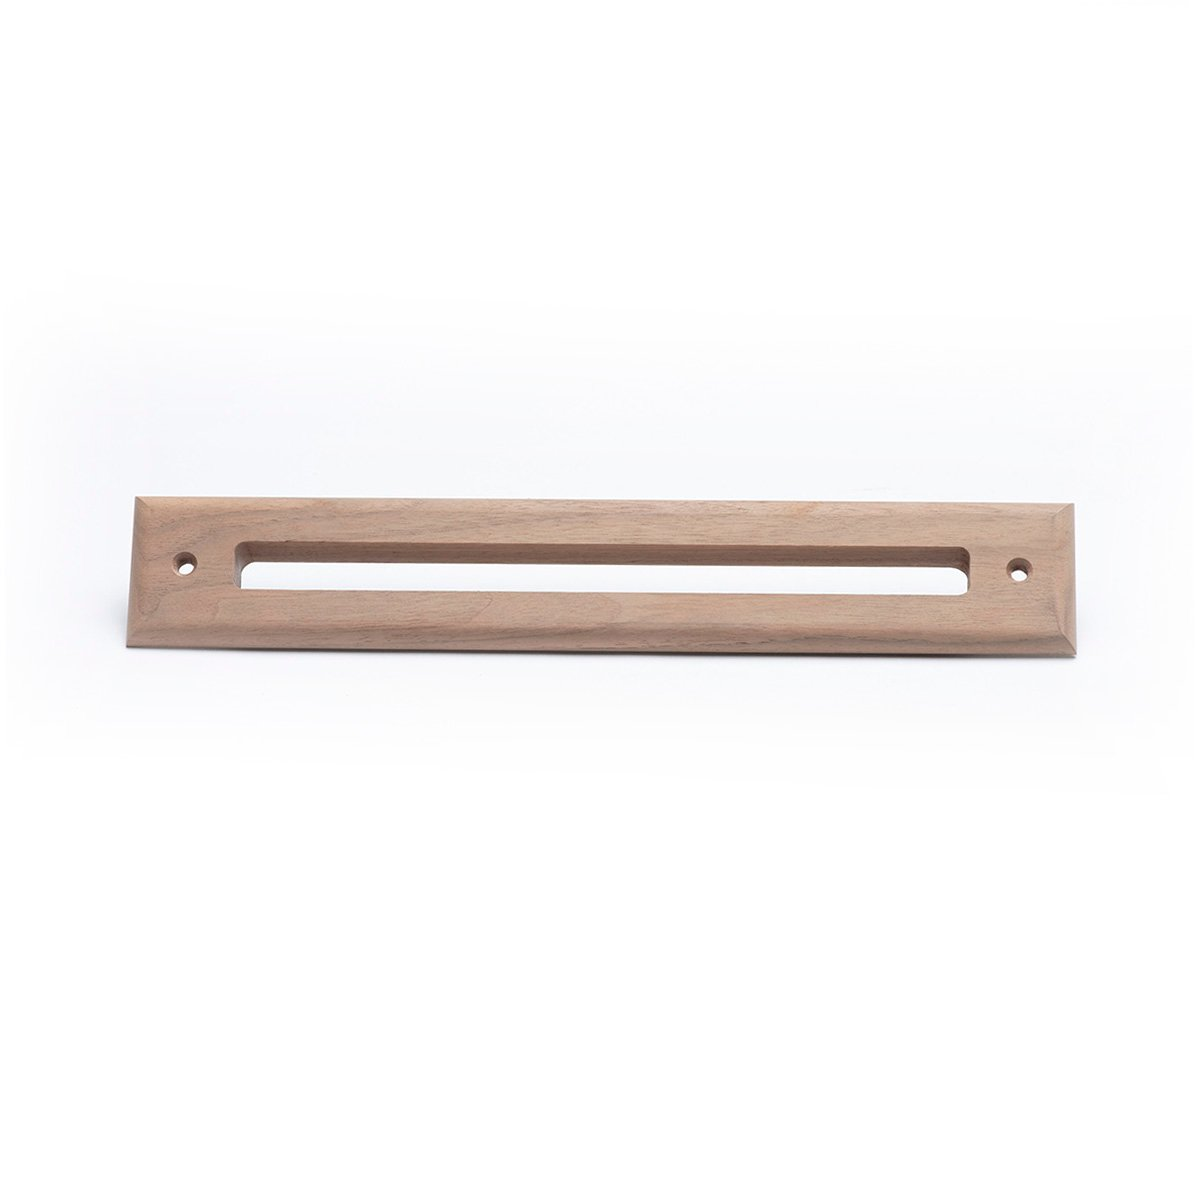 Slotted Outlet Face Plate, Wood, Walnut, UPC-67/68